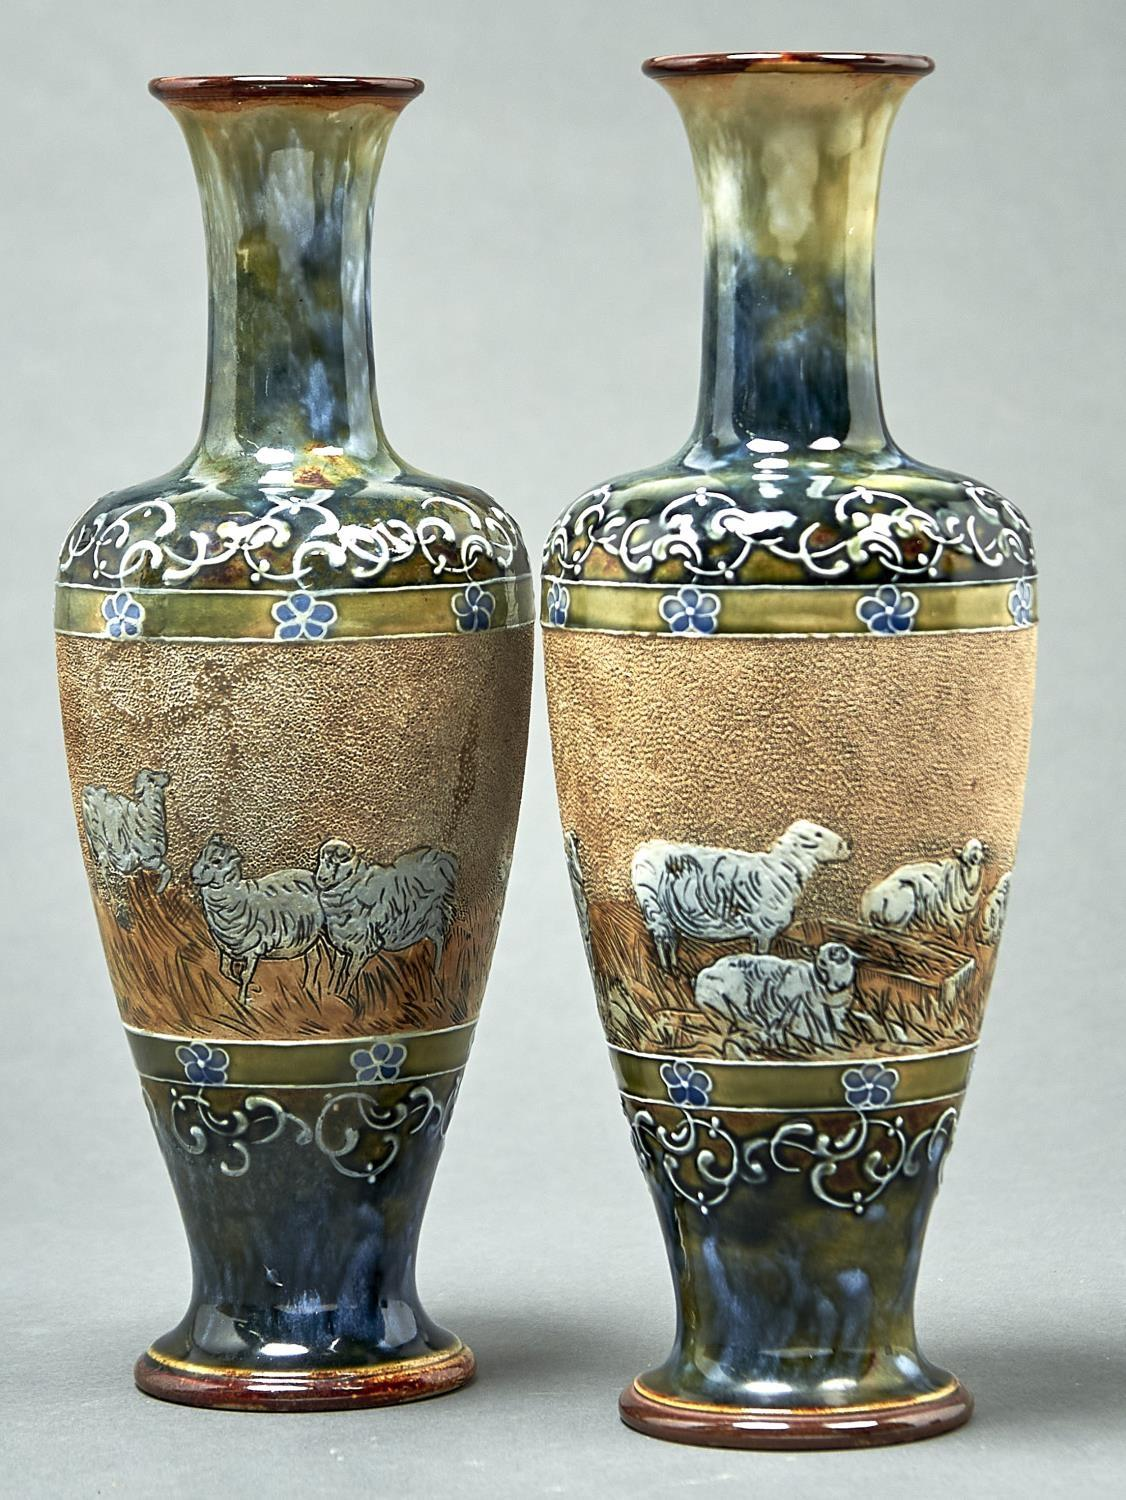 A PAIR OF DOULTON WARE VASES, C1891-1913, OF SHOULDERED FORM DECORATED BY HANNAH B. BARLOW WITH A